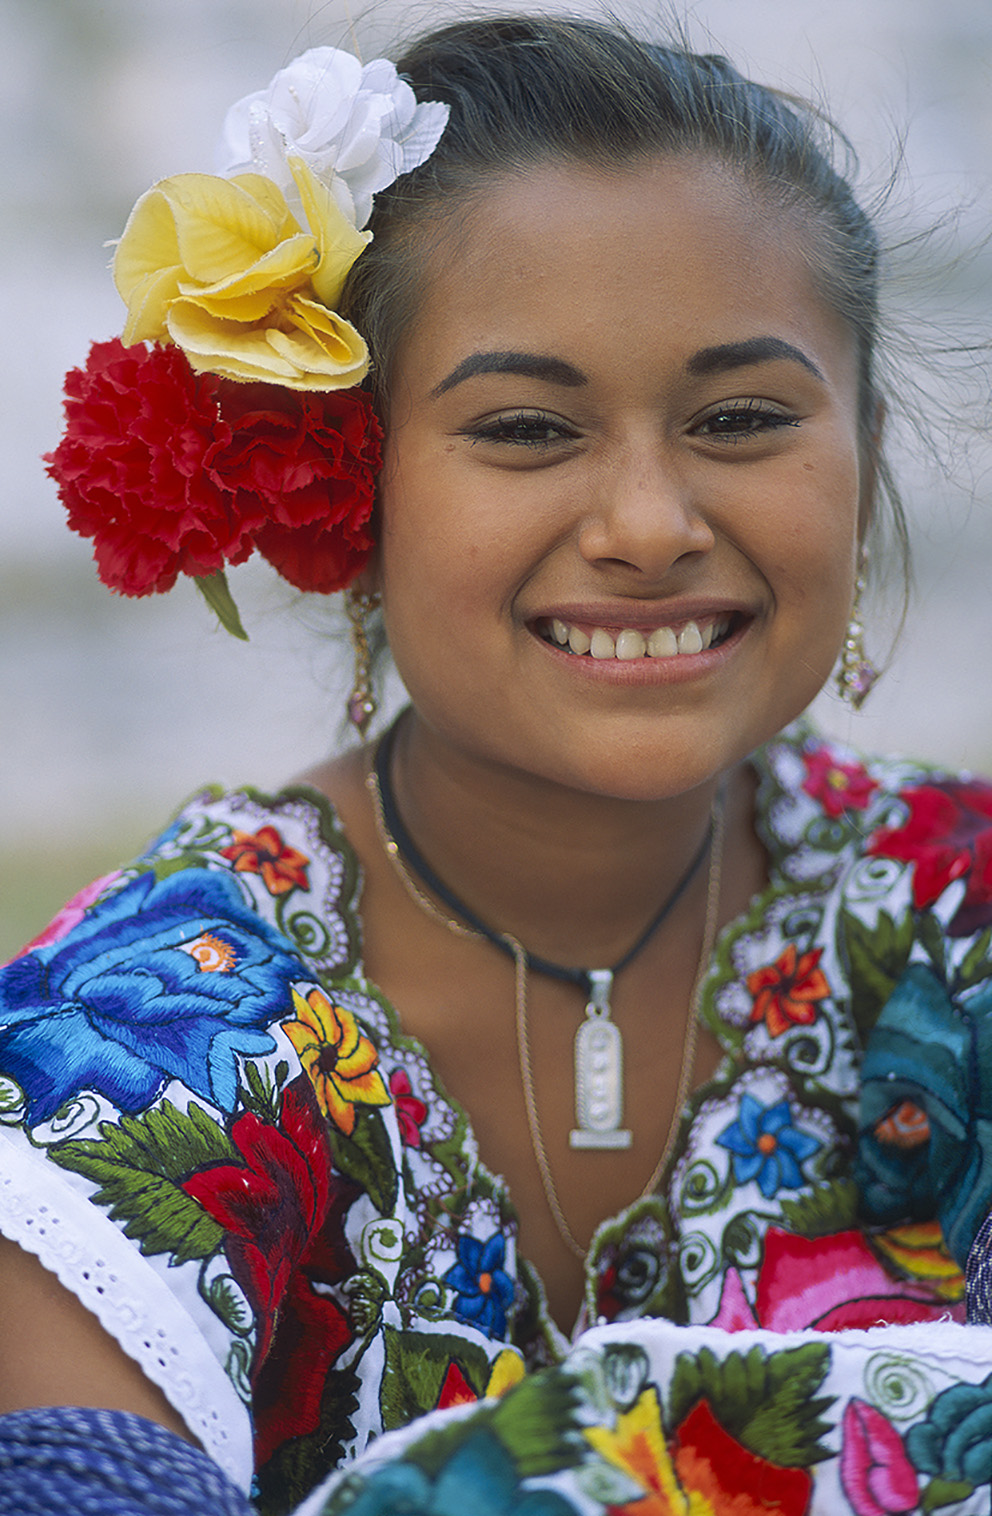 Mexico, Yucatan state, young Maya girl.